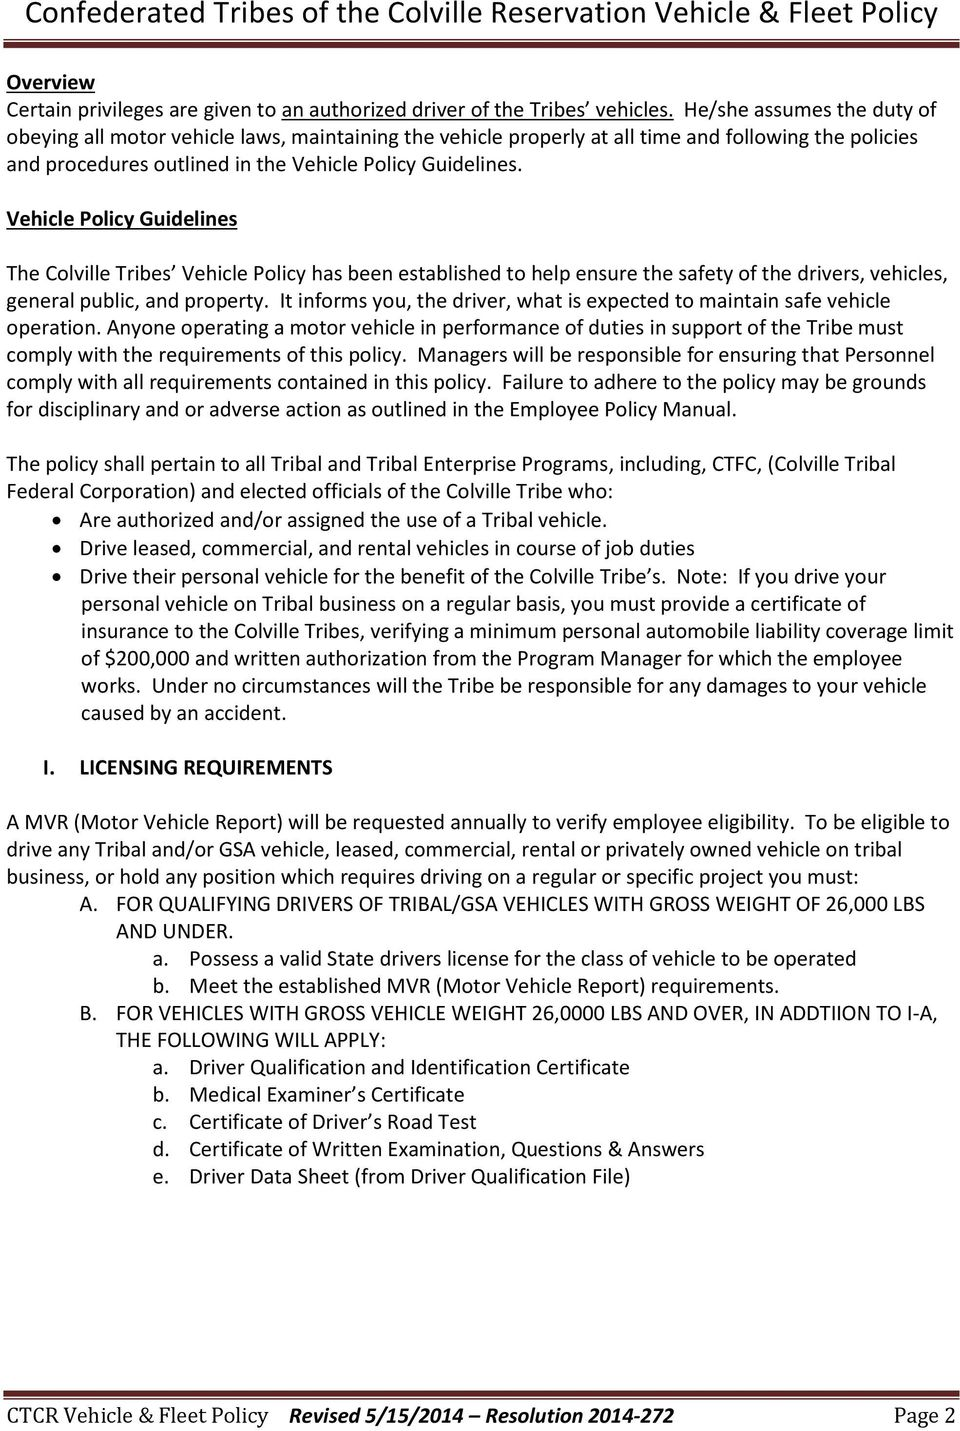 Vehicle Policy Guidelines The Colville Tribes Vehicle Policy has been established to help ensure the safety of the drivers, vehicles, general public, and property.